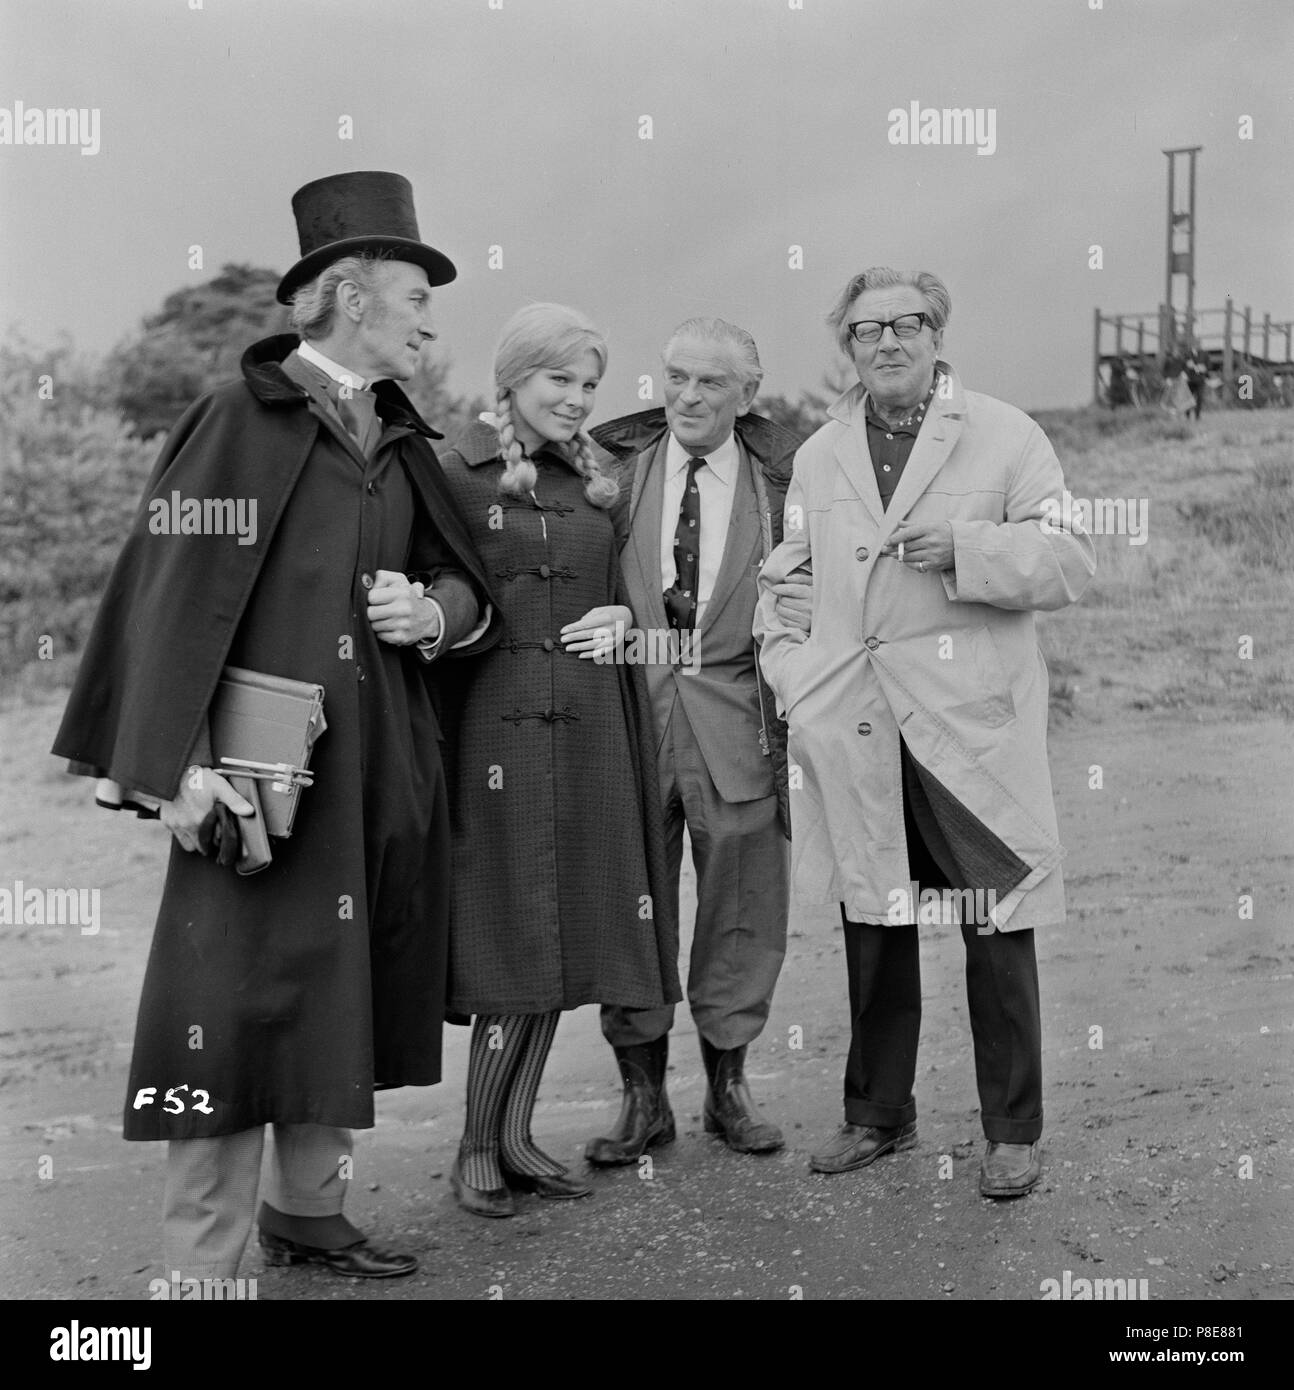 Frankenstein Created Woman (1967) Peter Cushing, Susan Denberg, Producer Anthony Nelson Keys, Film Director Terence Fisher,     Date: 1967 - Stock Image